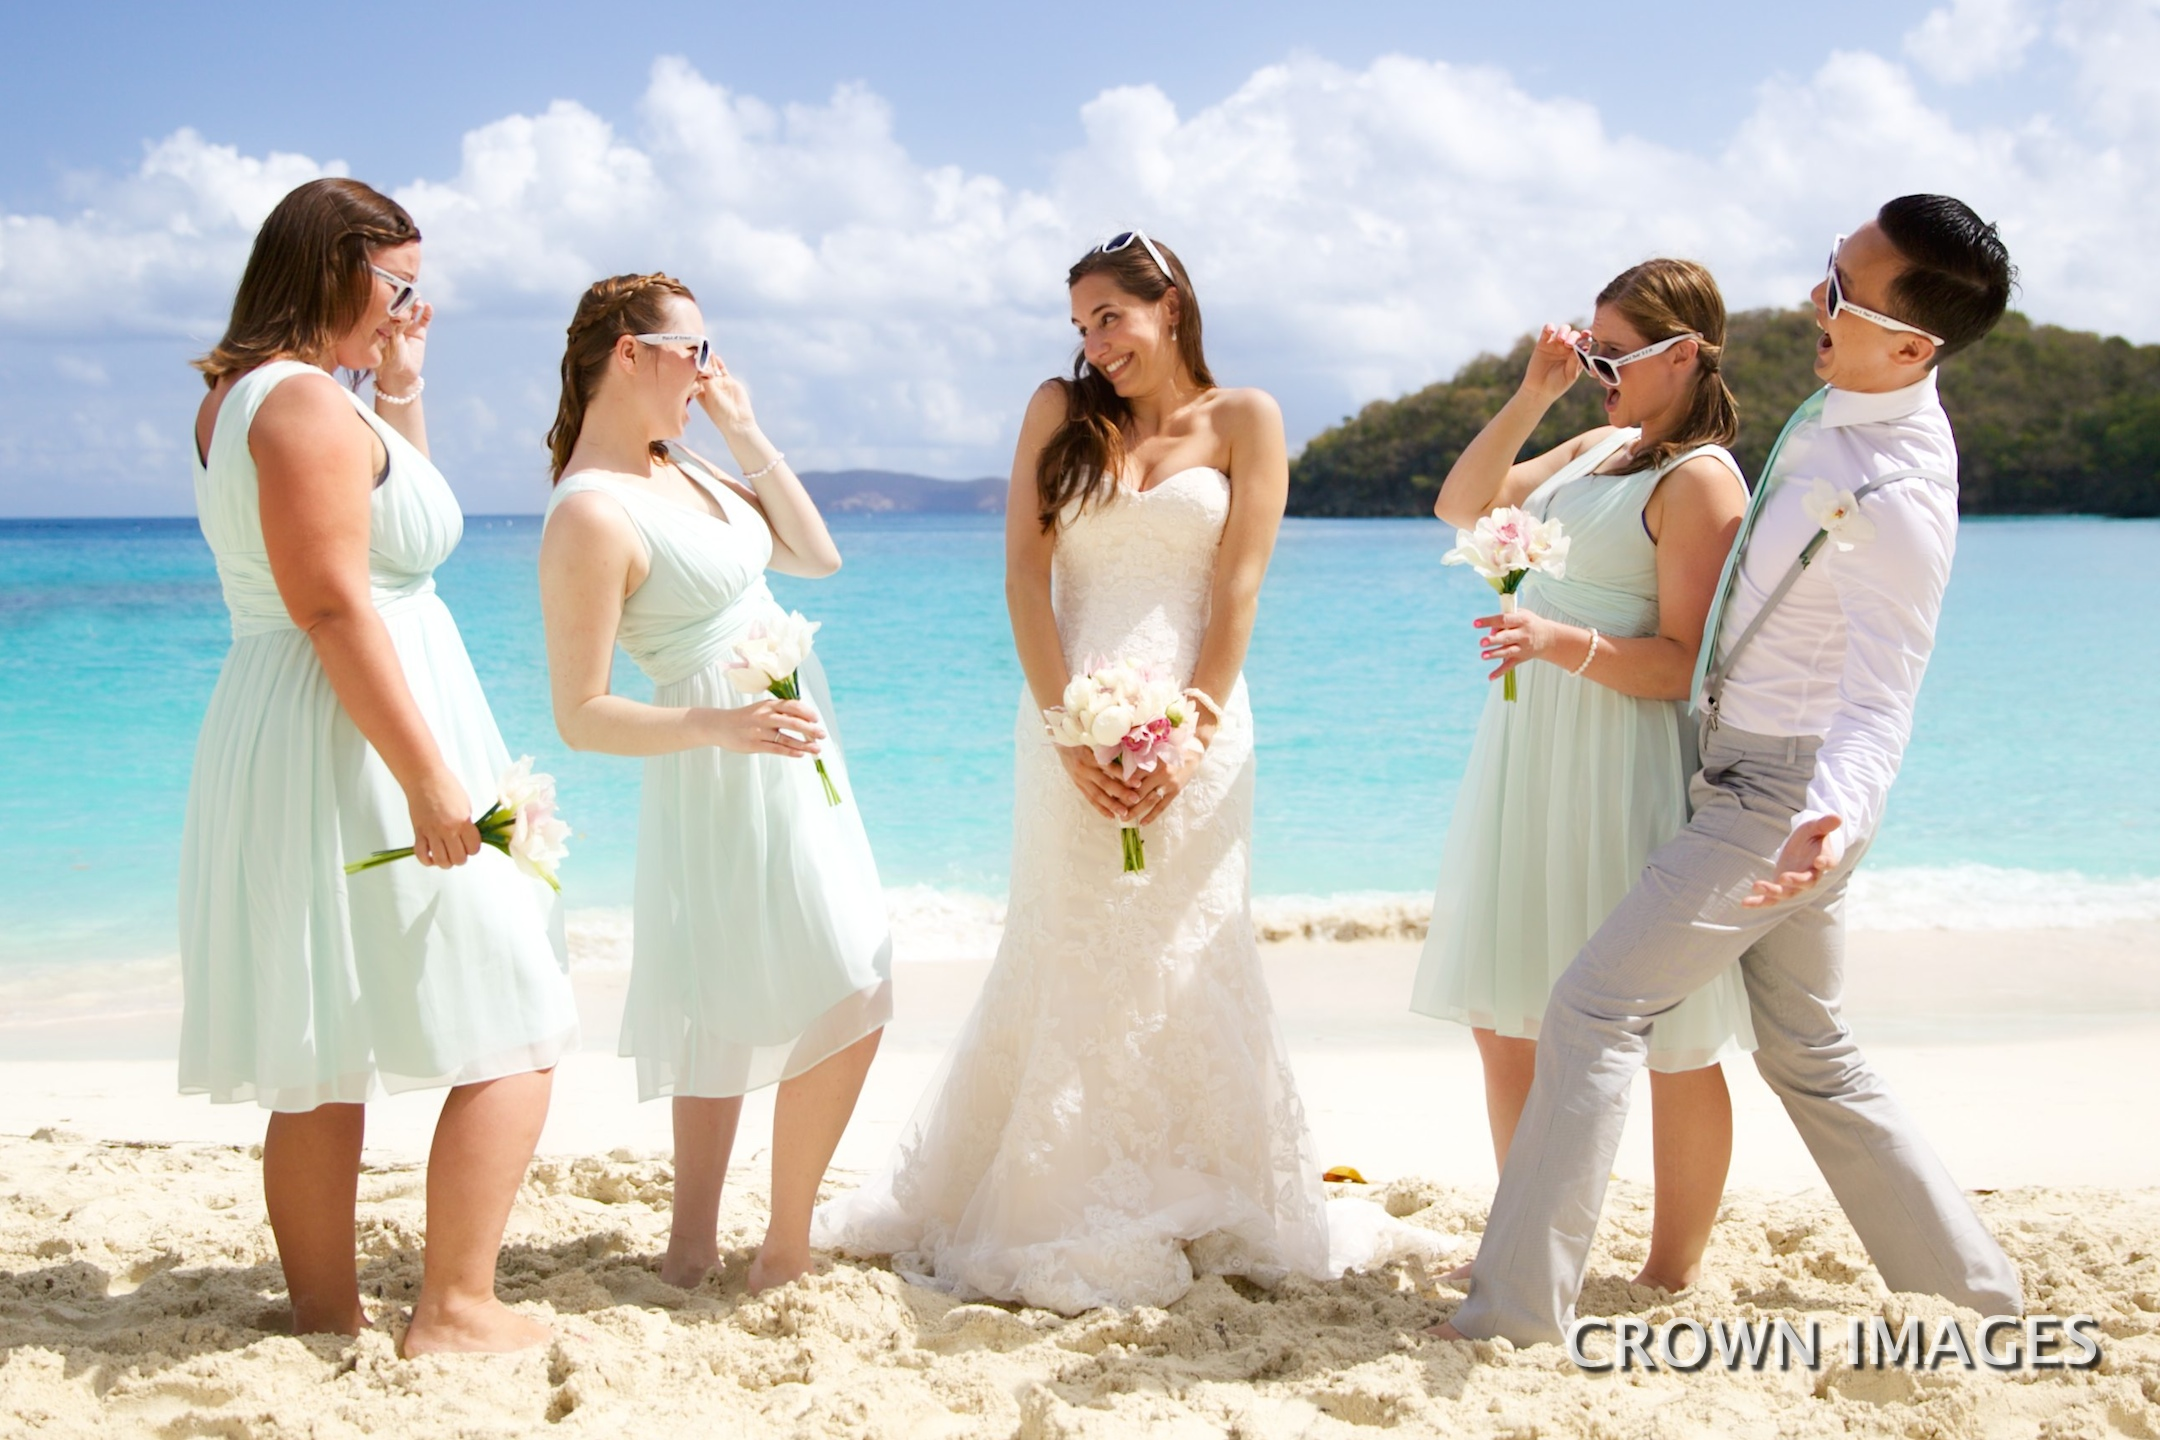 wedding photos by crown images